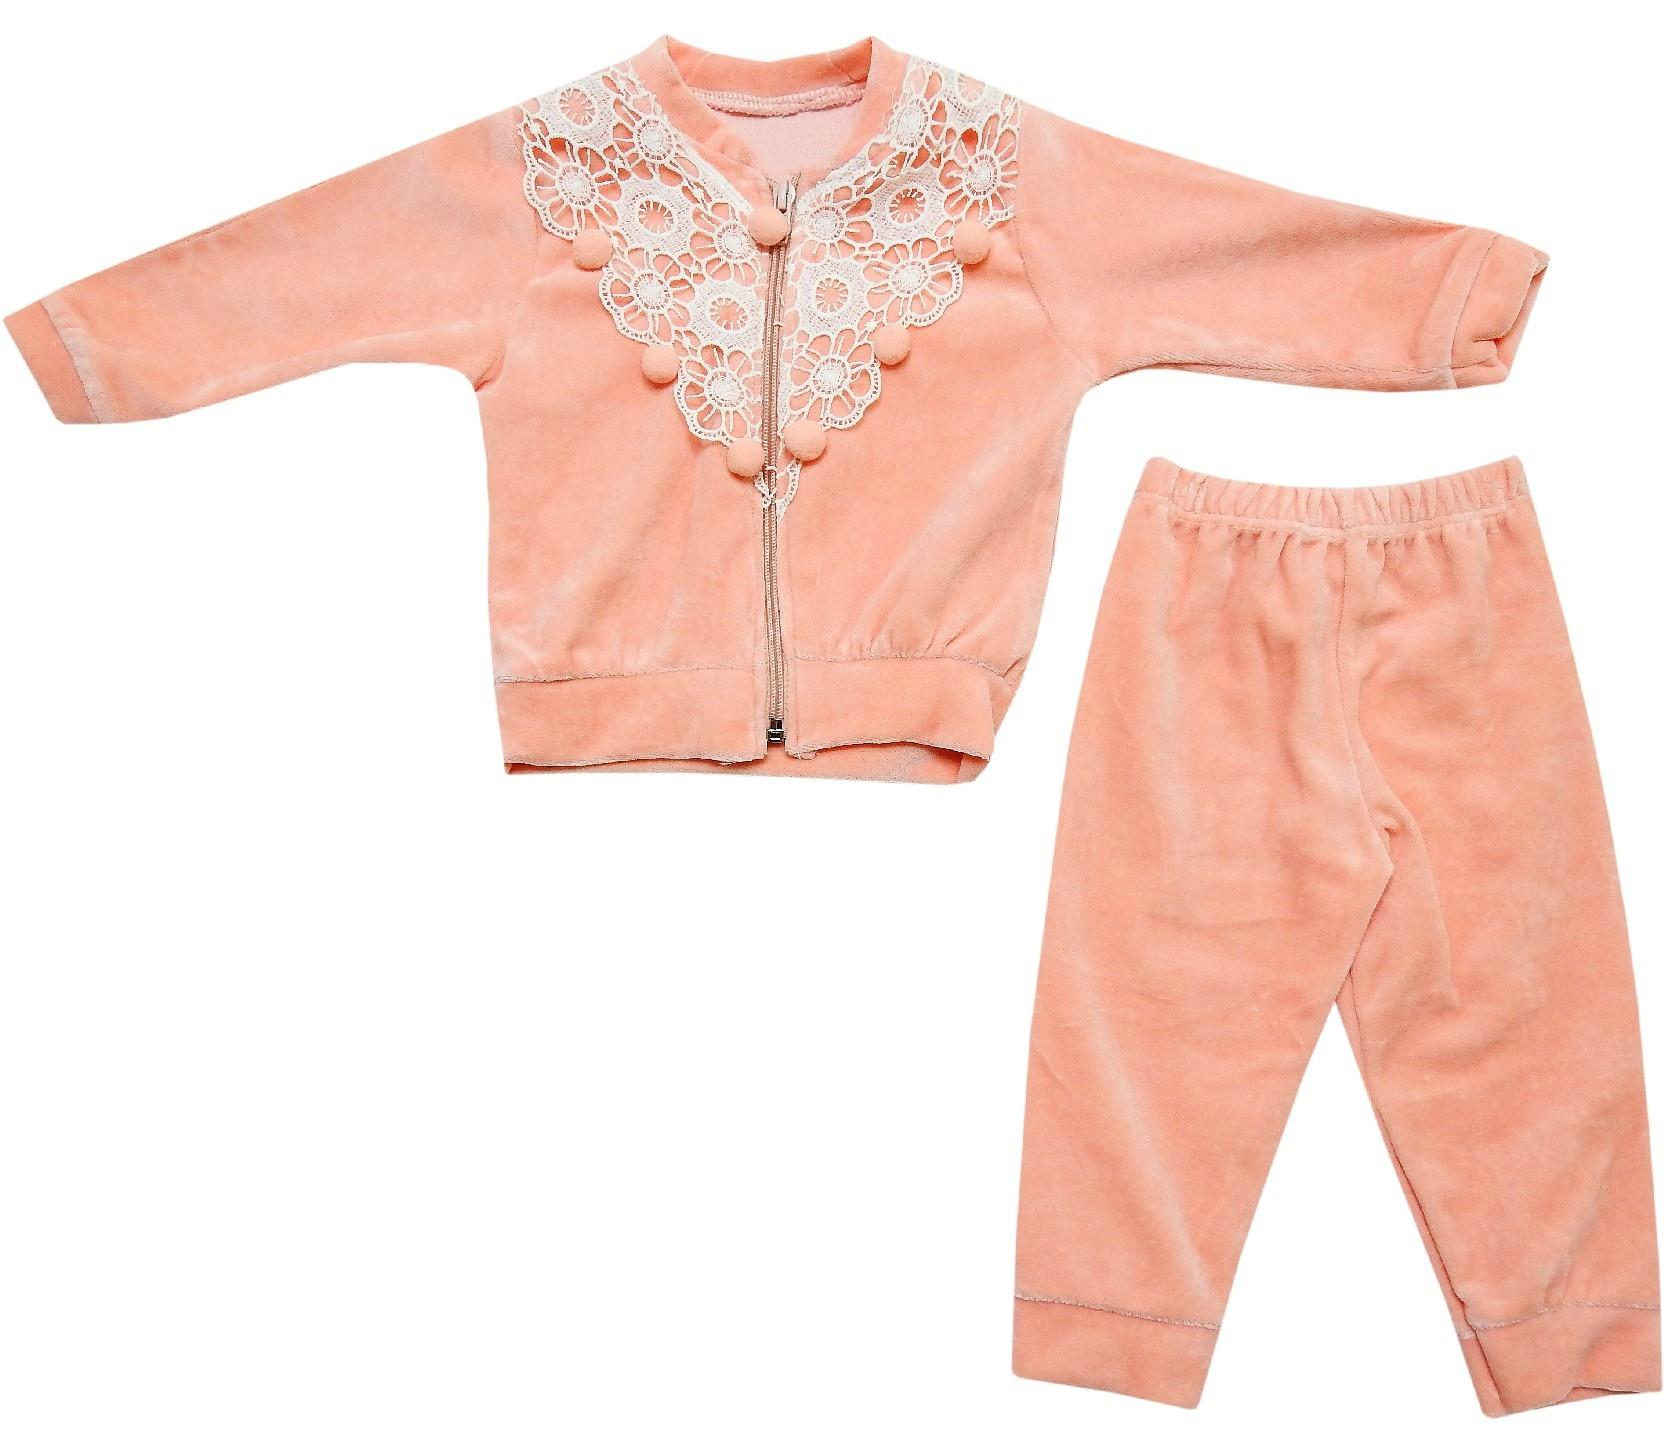 268 wholesale lace fabric embroidery velvet cardigan with trouser for baby (6-9 month)